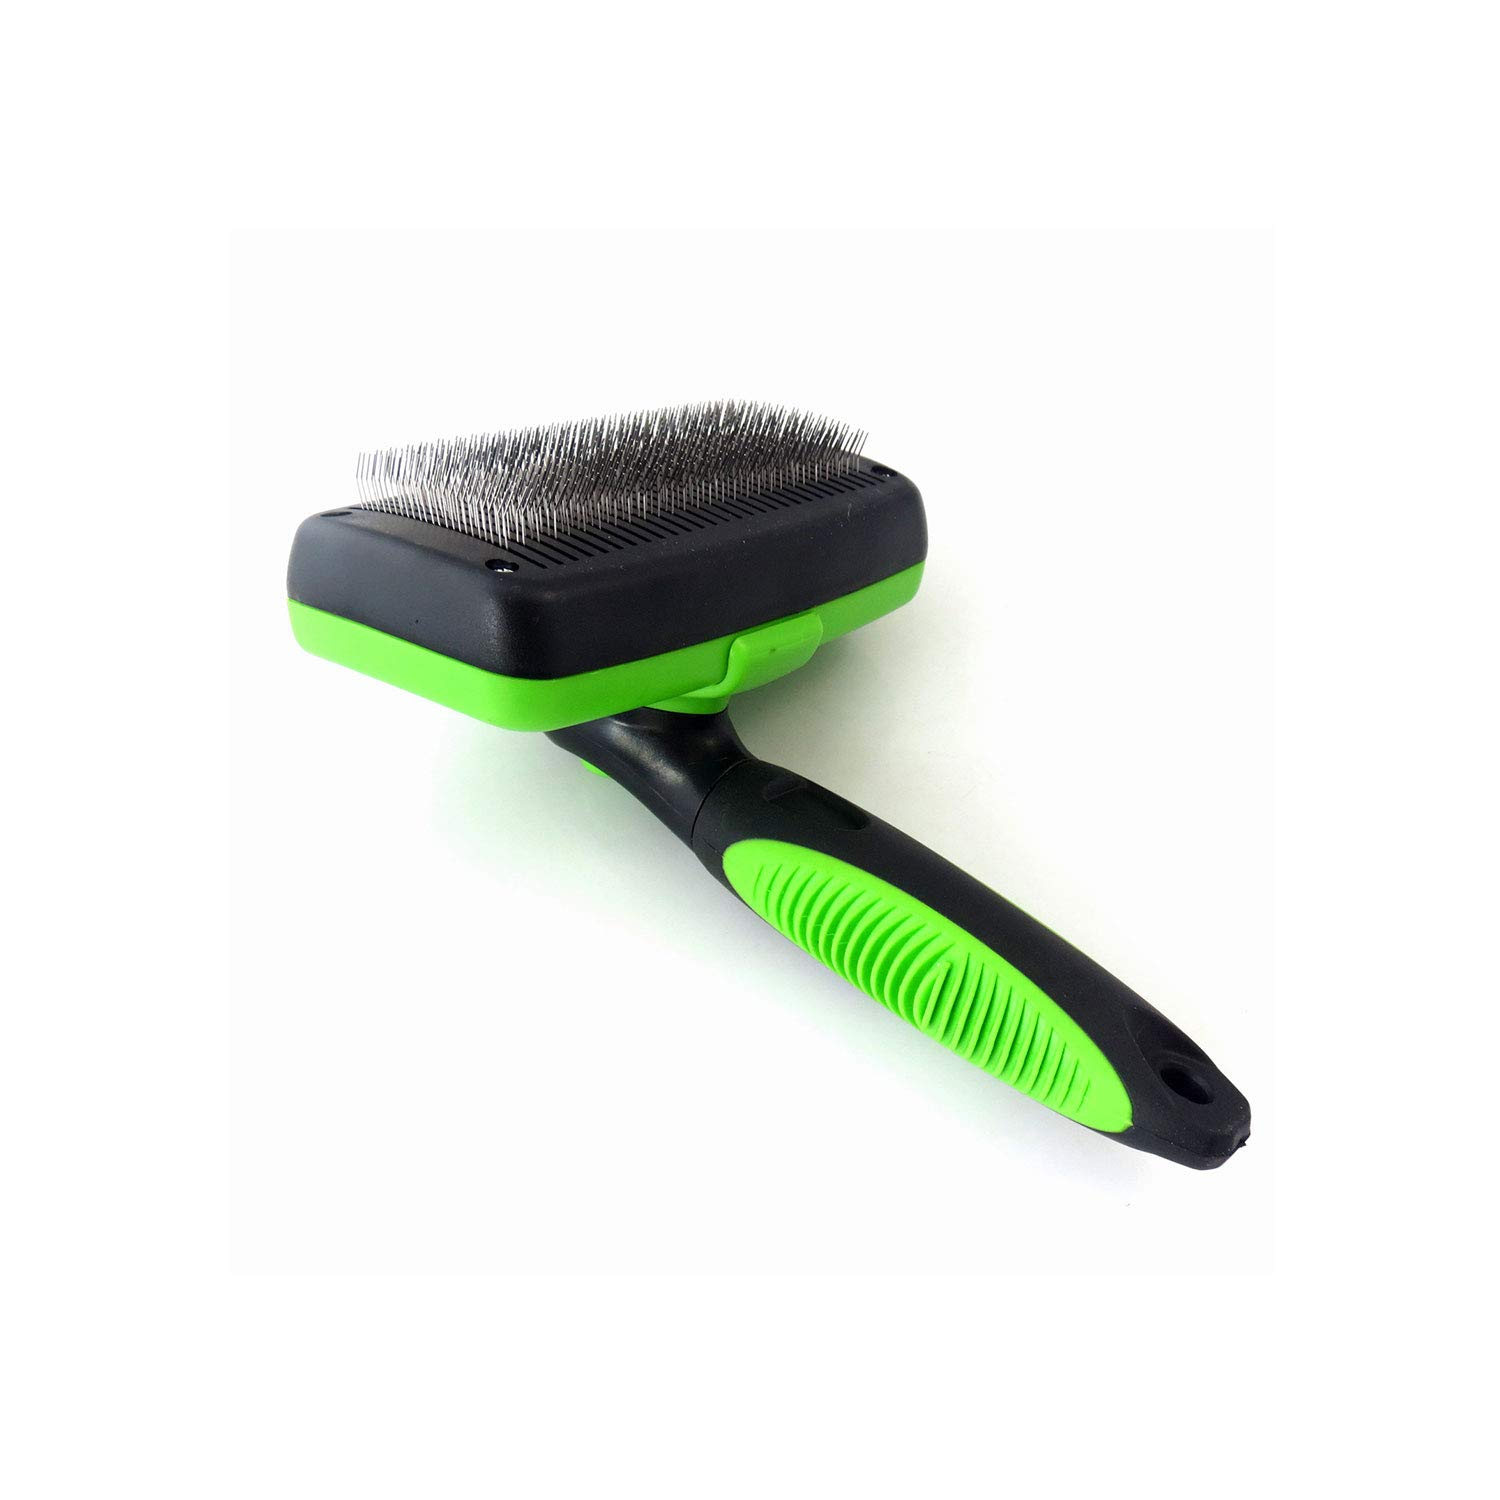 TJMWL Retractable Dog Hair Hair Removal Brush Smooth Finish Beauty Brush Dog Hair Hair Removal Tool Suitable for Large, Medium and Small pet Hair Removal Device,Green